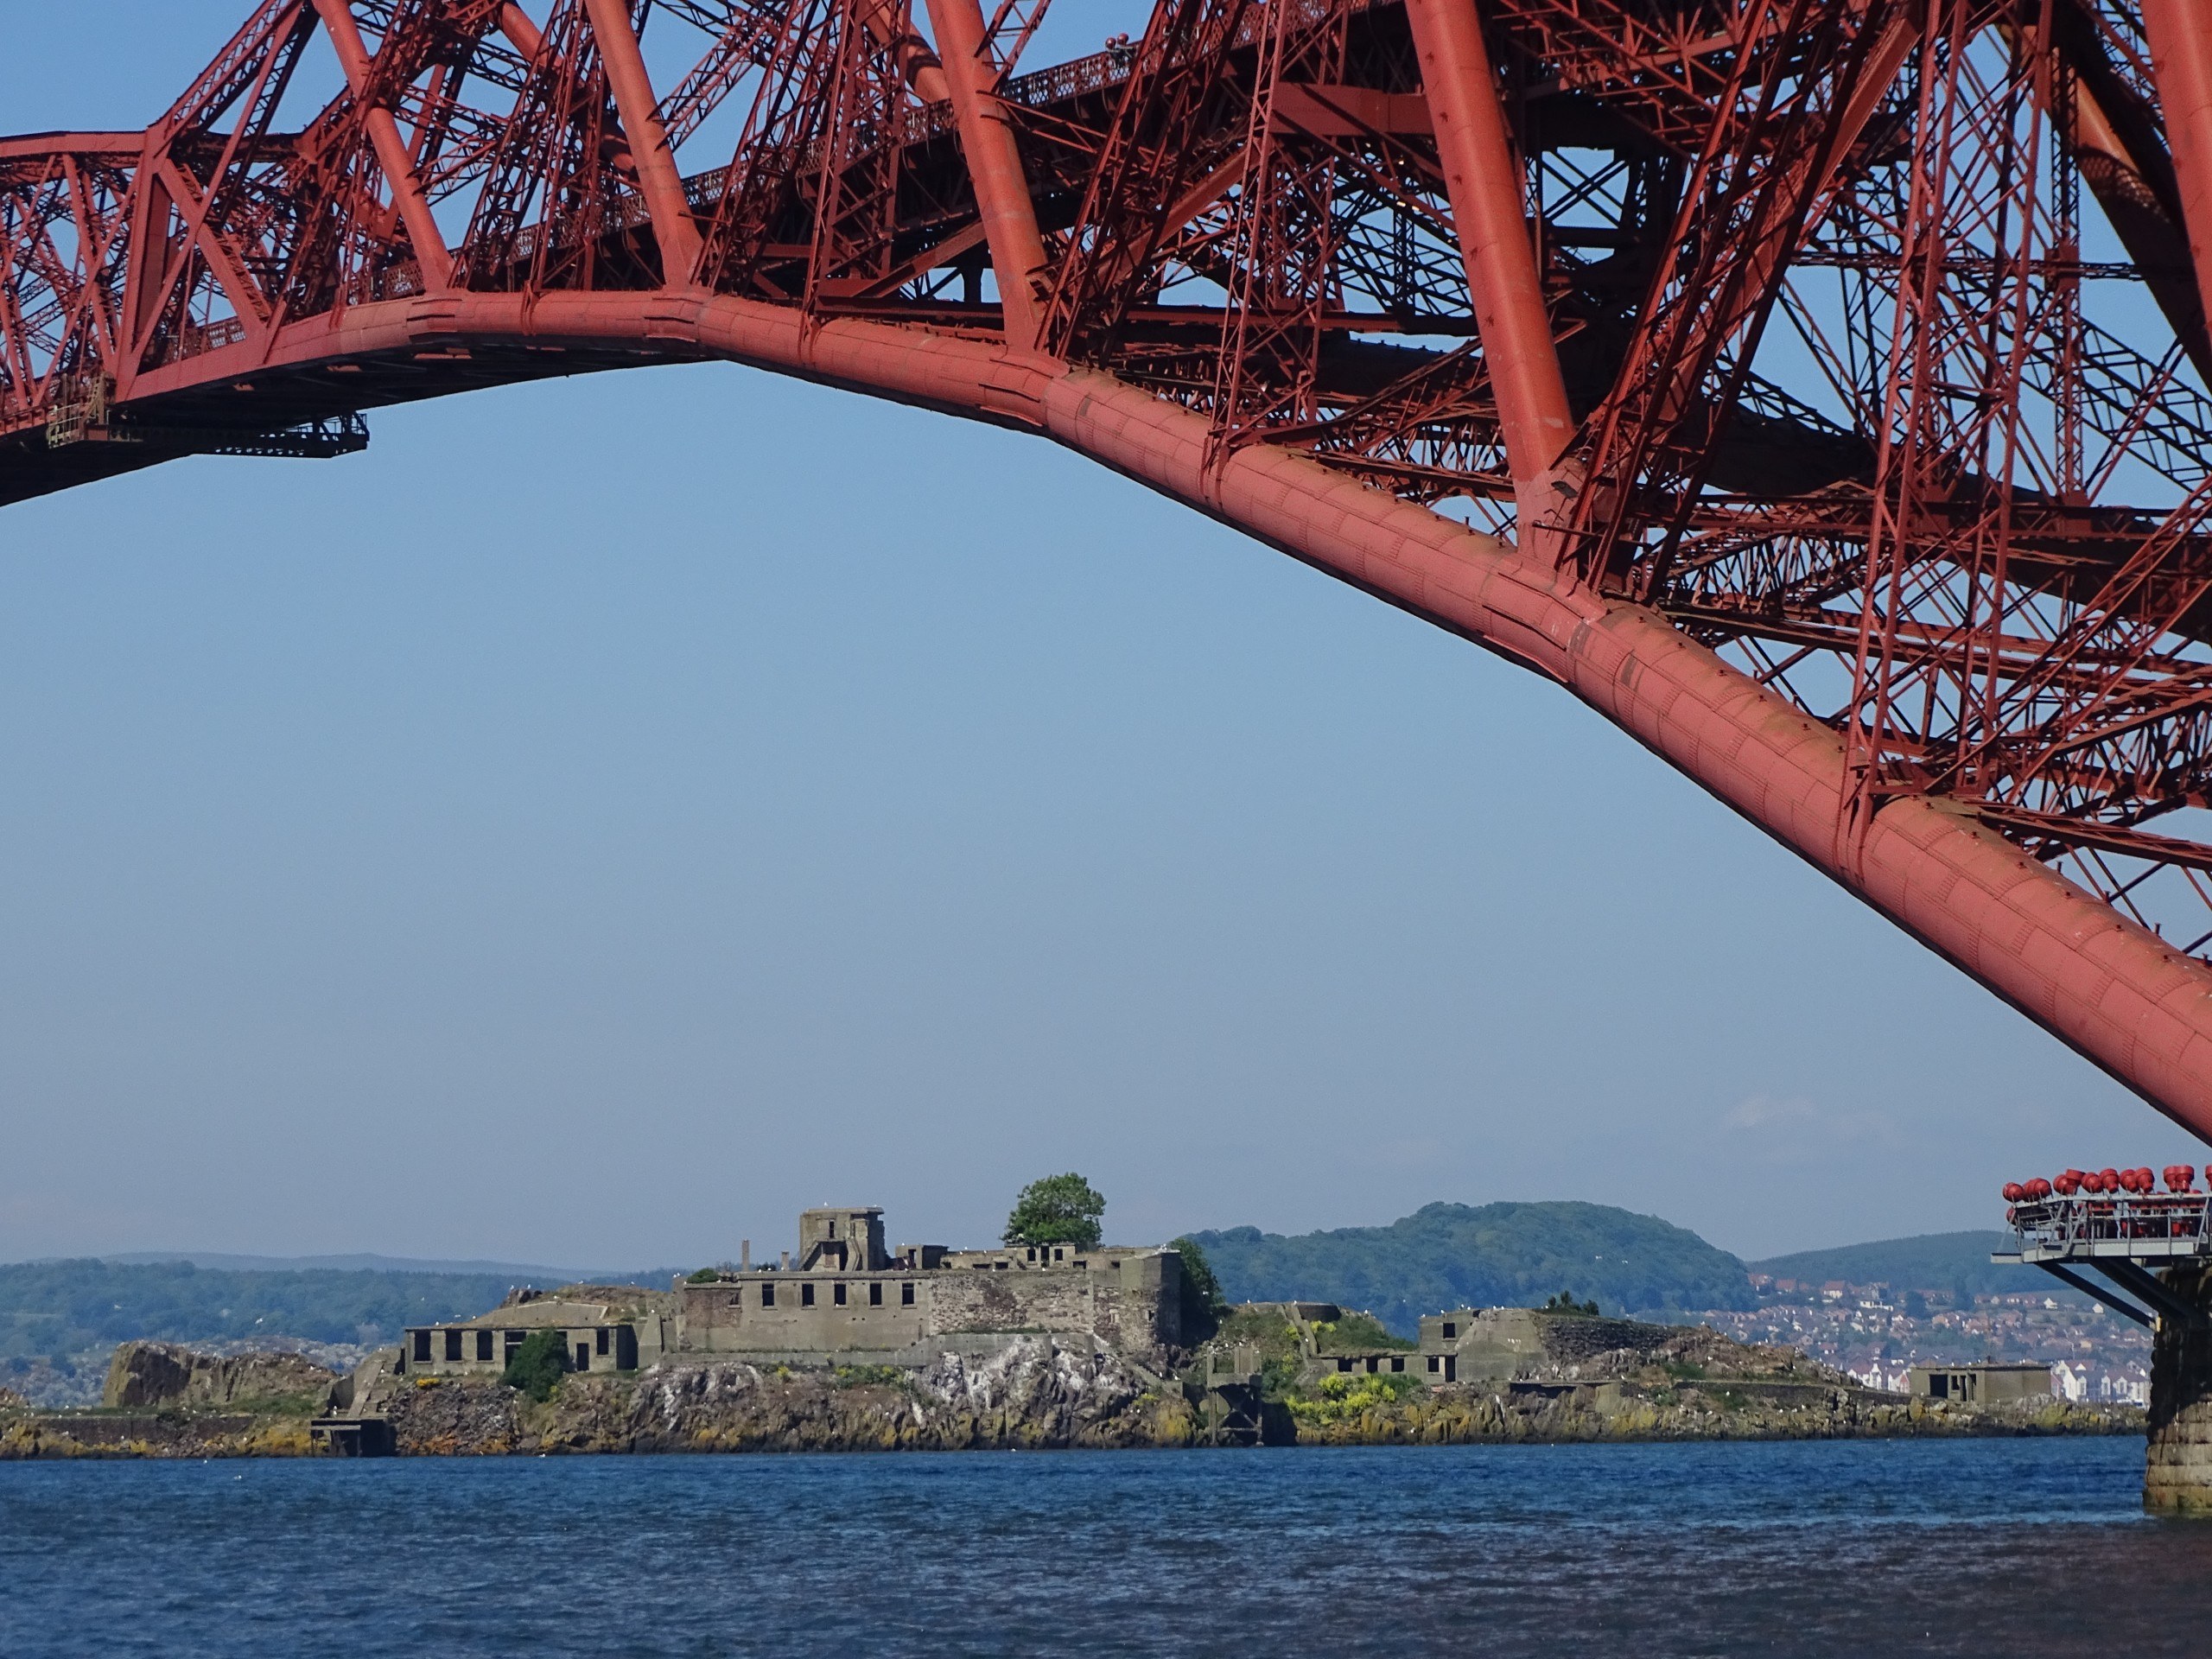 Bridge, castle, island, Sea